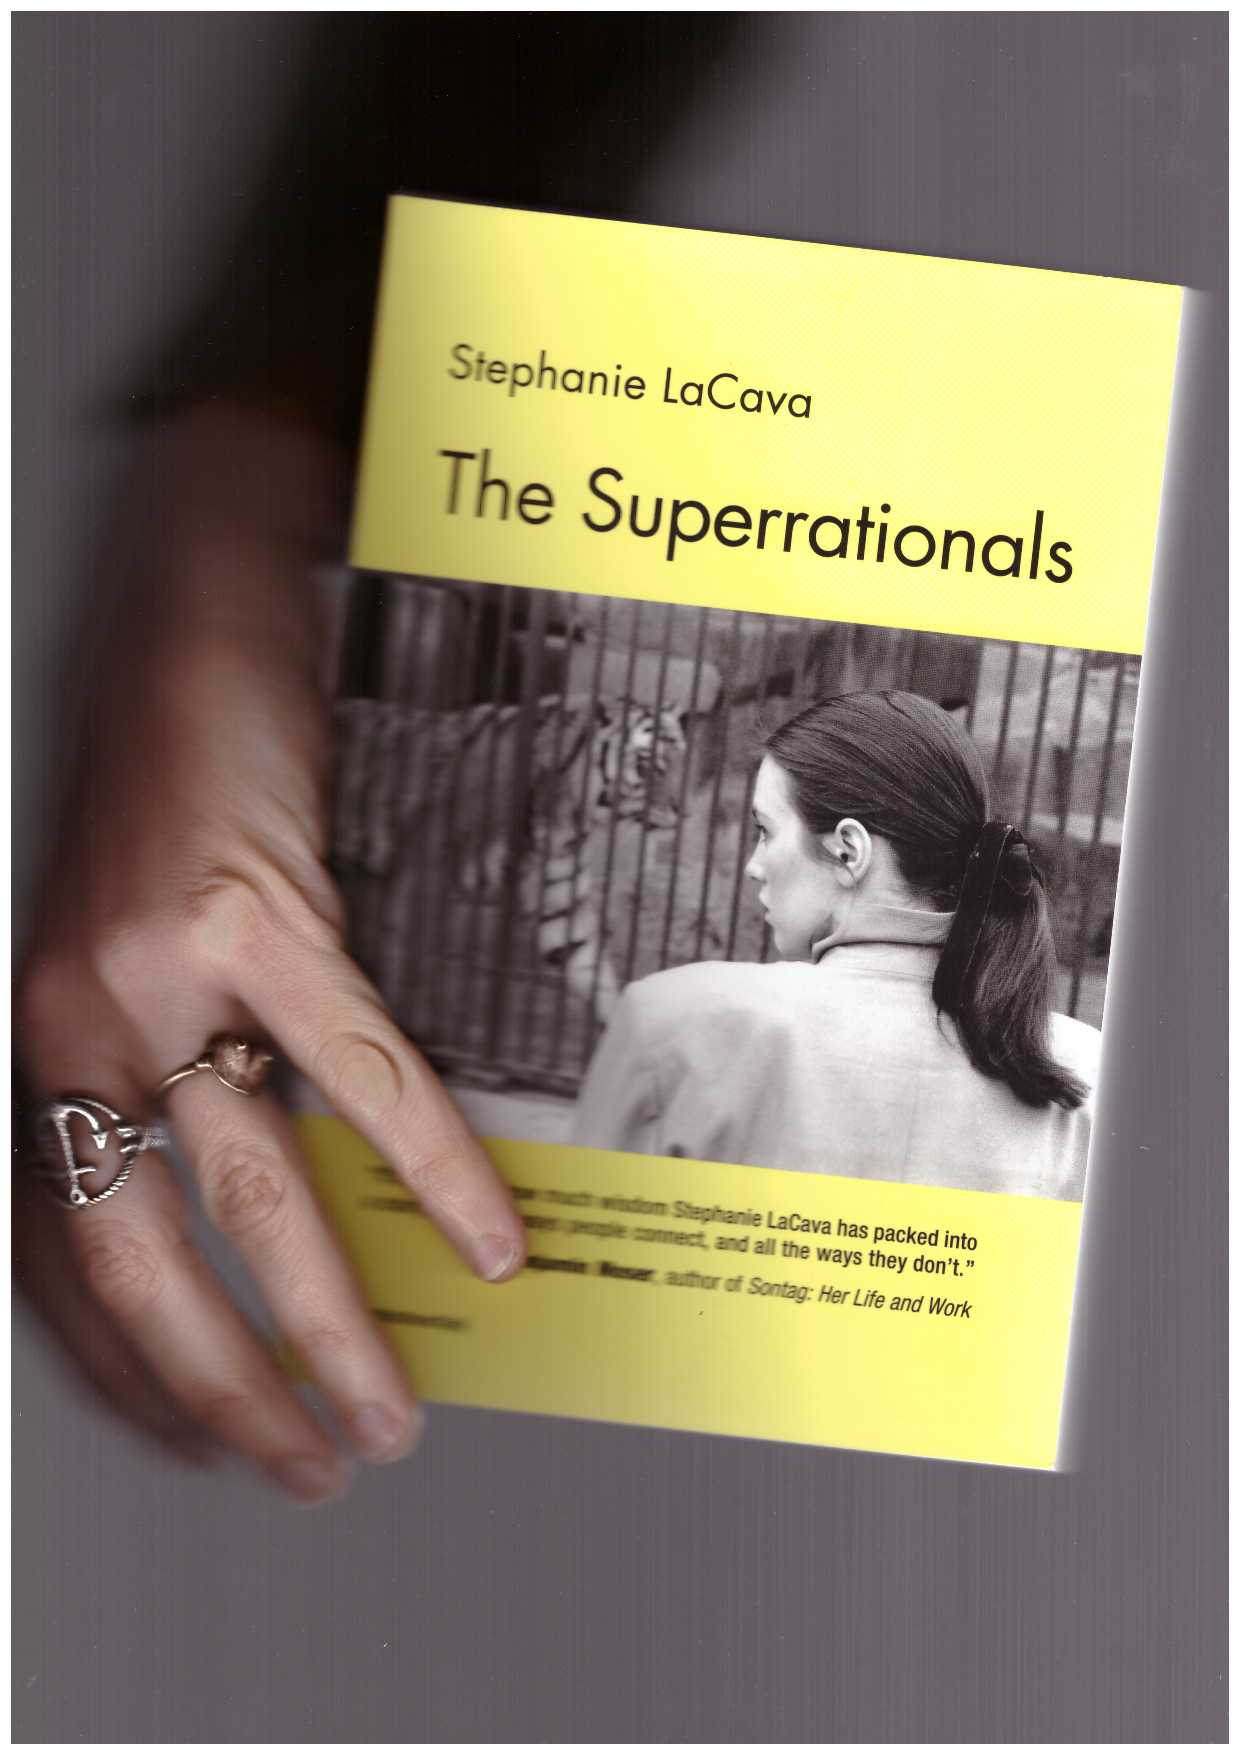 LACAVA, Stephanie - The Superrationals